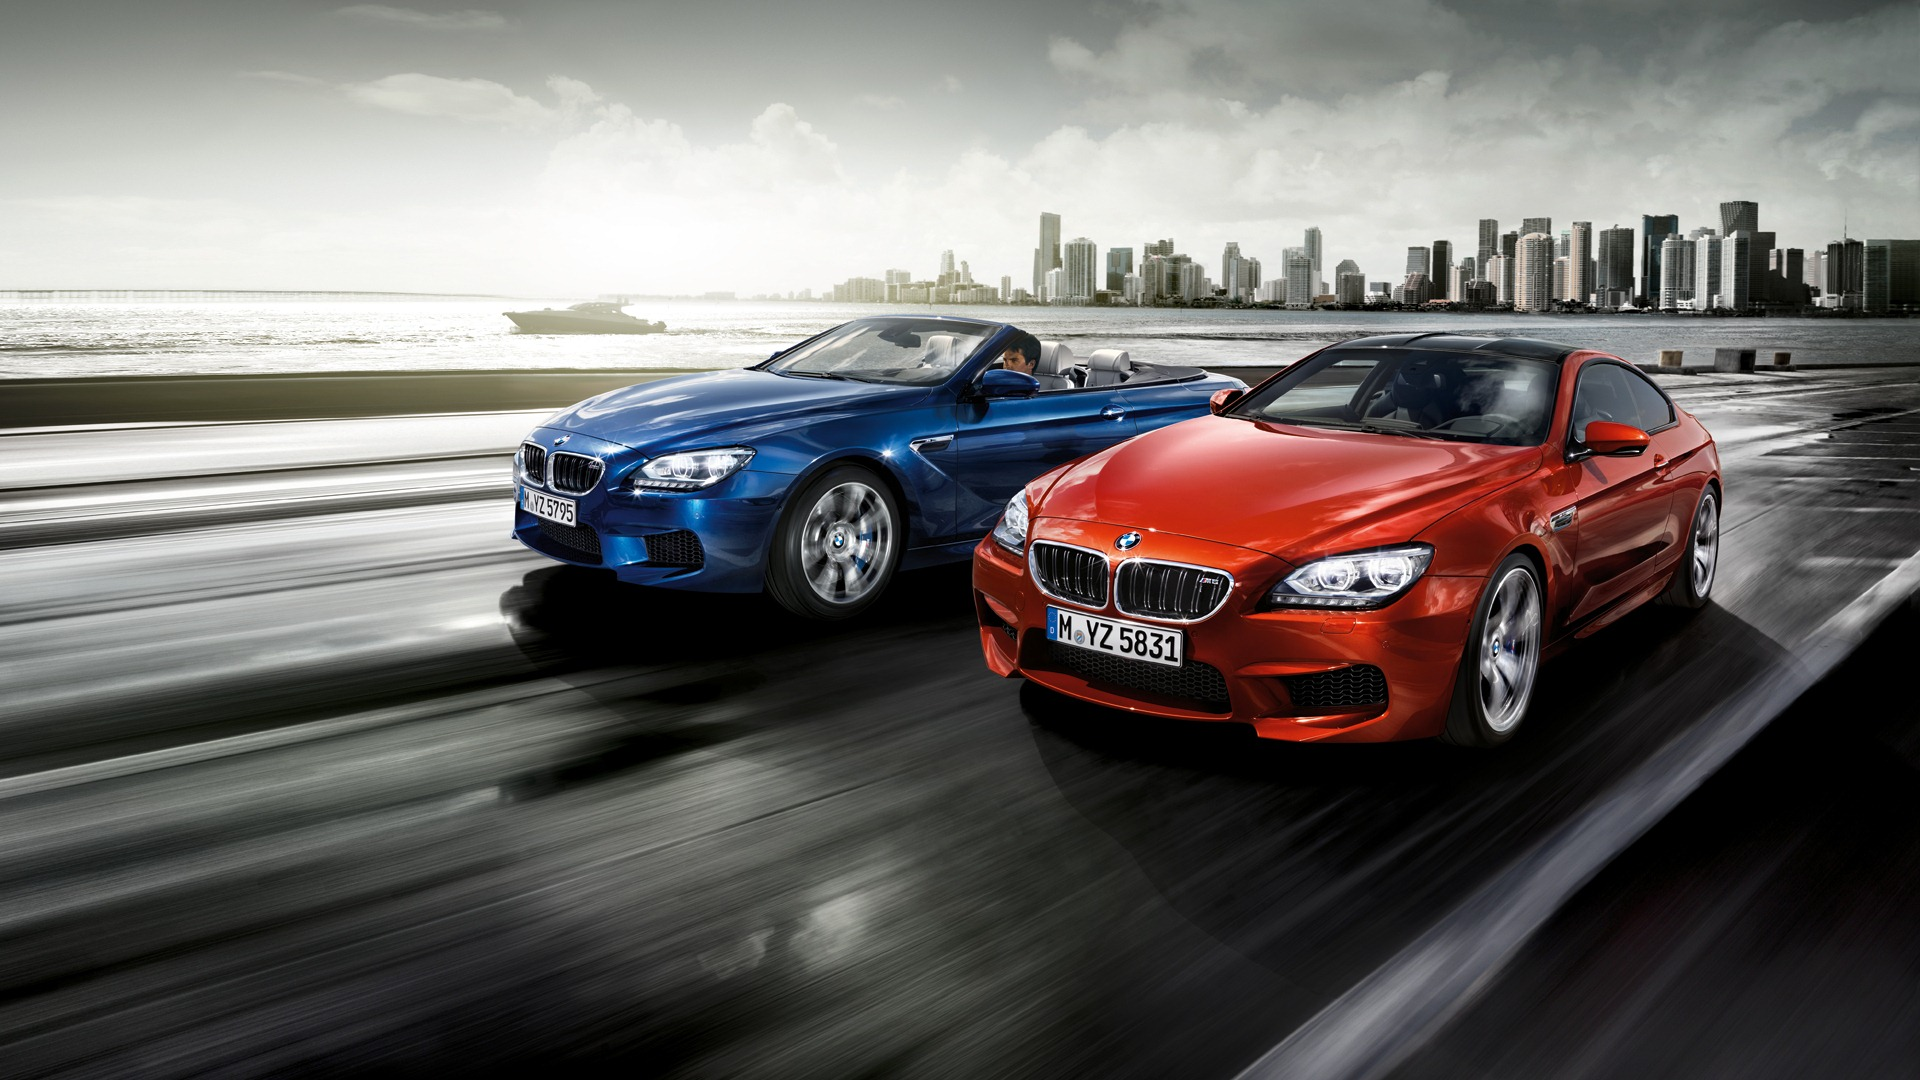 Download Hd Wallpapers Backgrounds For Your Desktop Pc All Bmw Cars